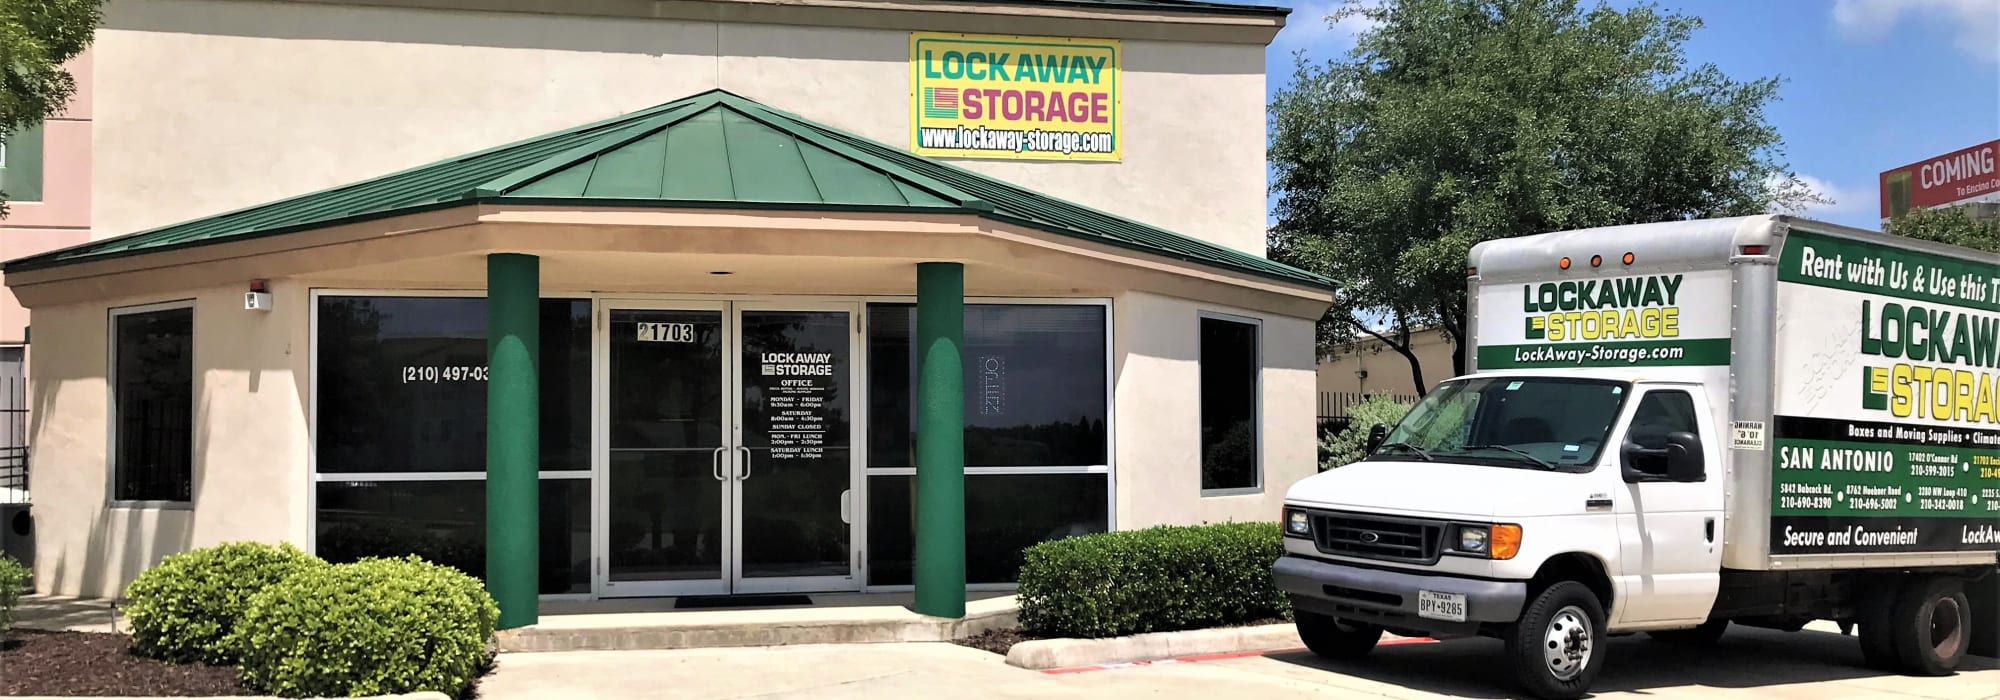 Self storage at Lockaway Storage in San Antonio Texas